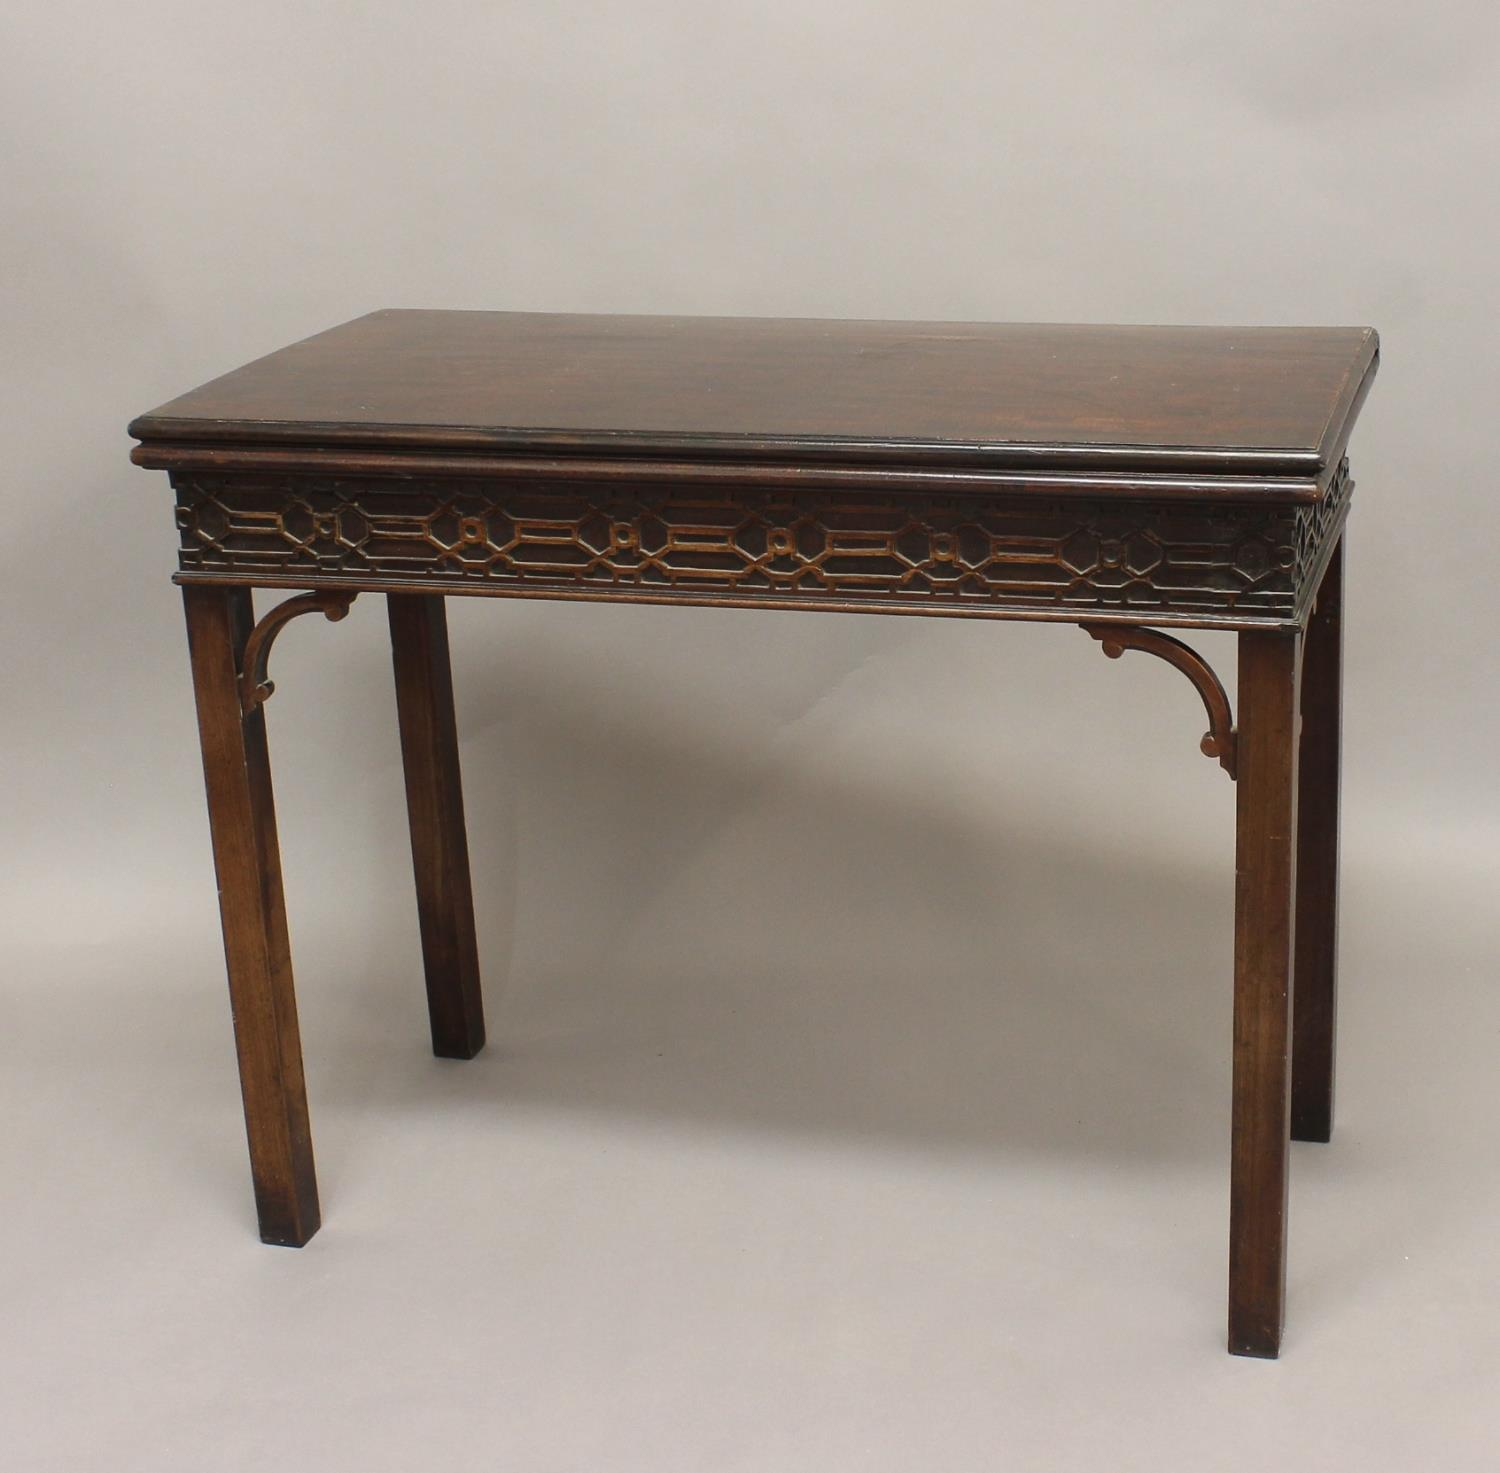 A GEORGE III MAHOGANY CARD TABLE. With a rectangular fold top with moulded border and baize lined